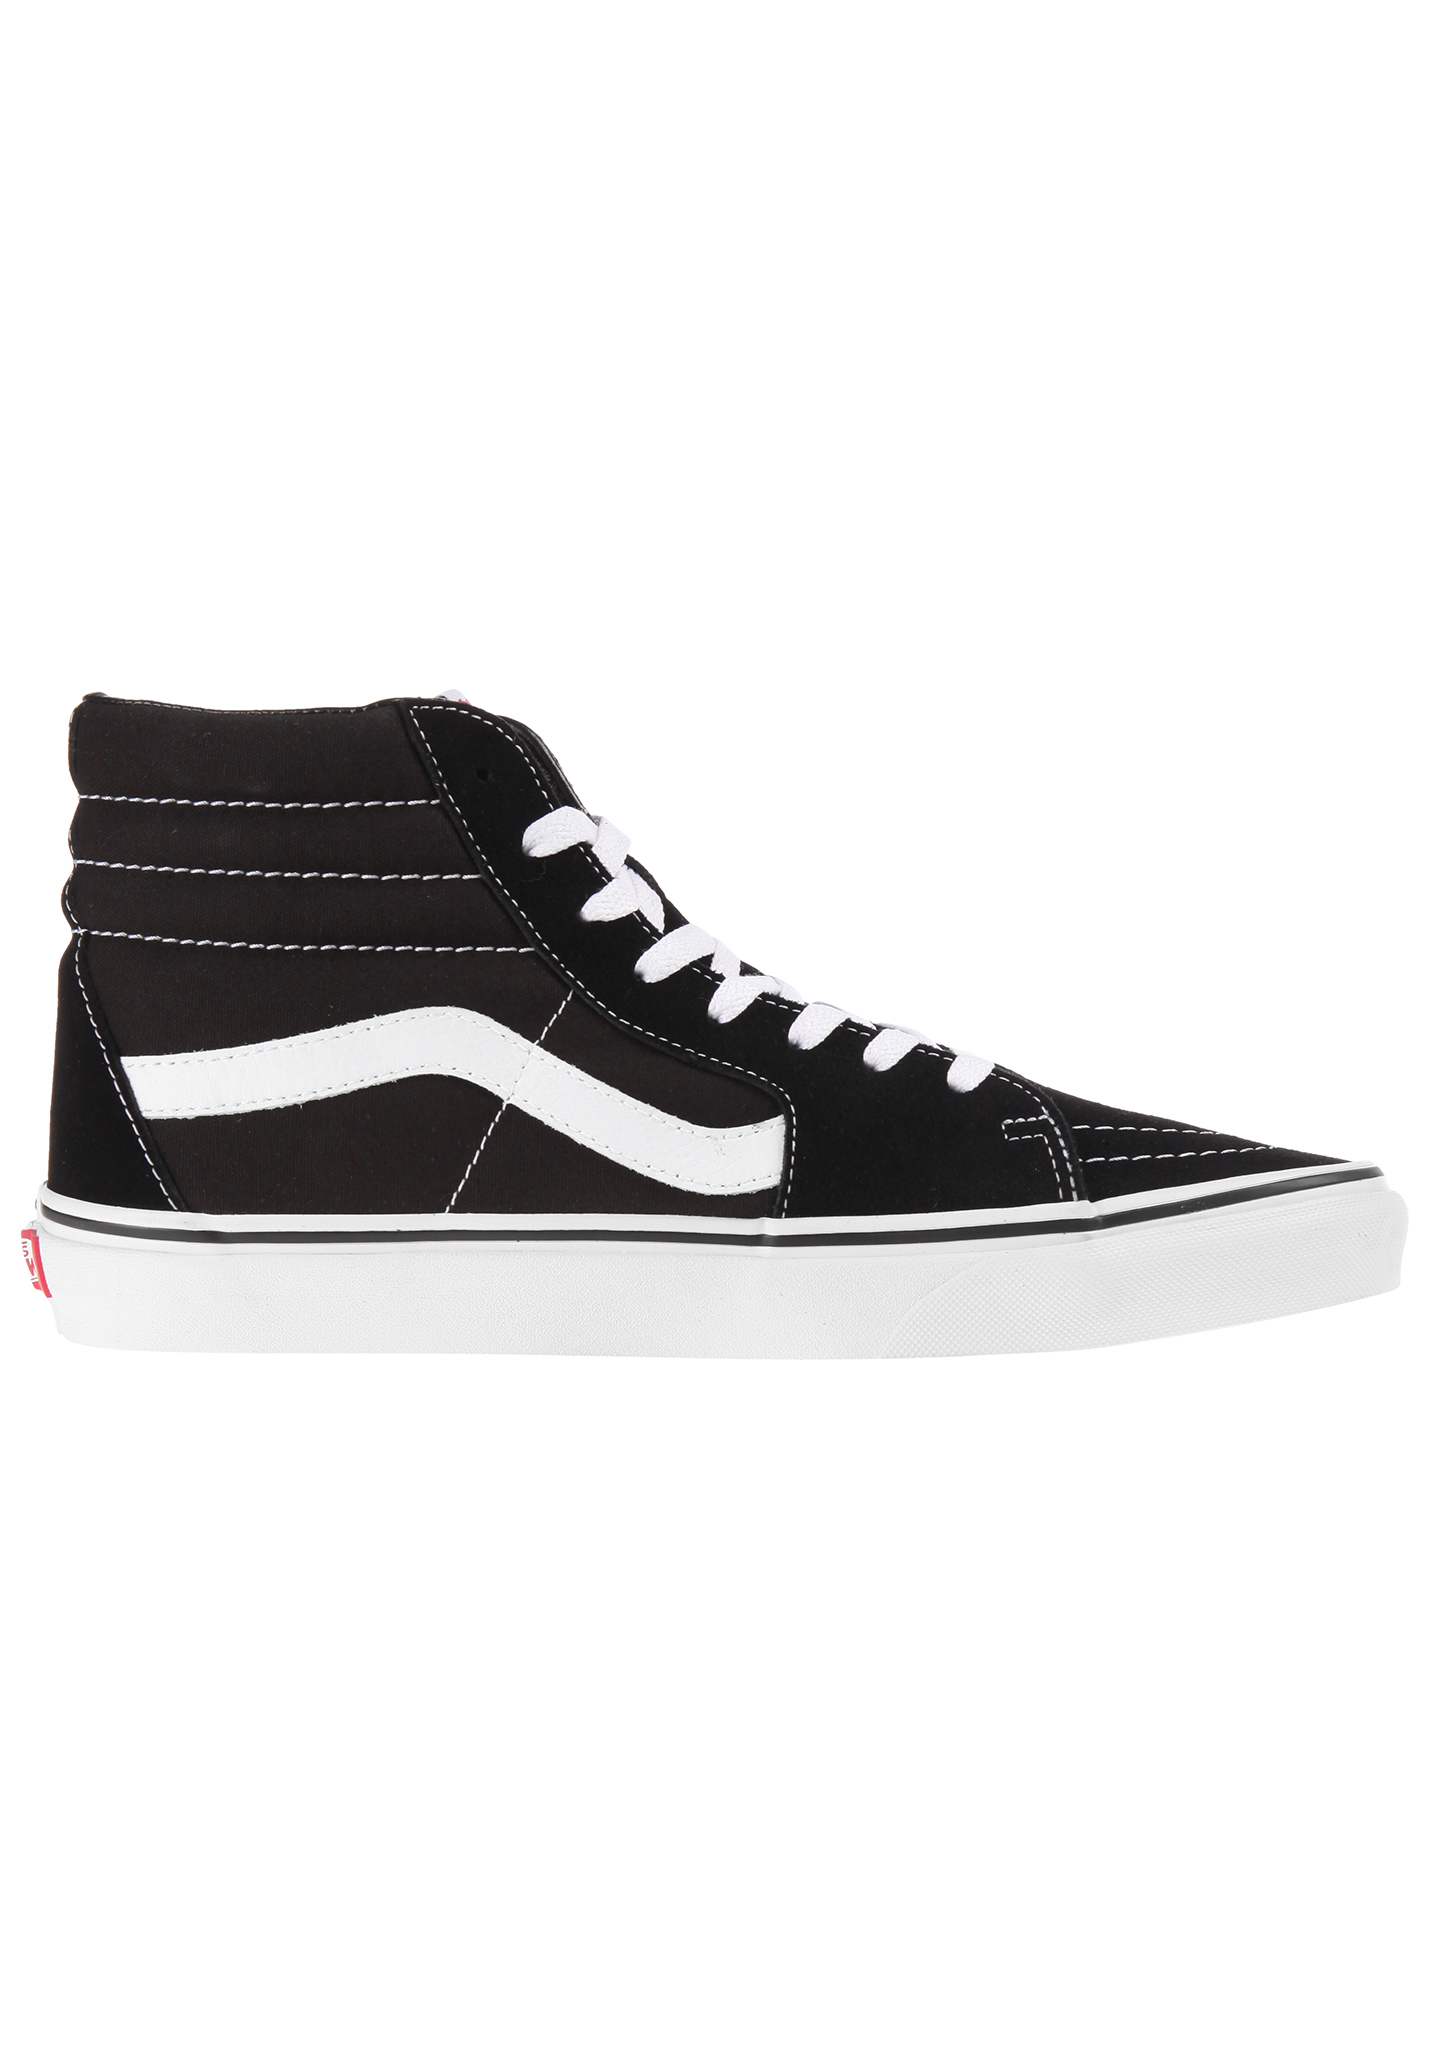 vans sk8 hi herren damen sneaker turnschuhe freizeit. Black Bedroom Furniture Sets. Home Design Ideas